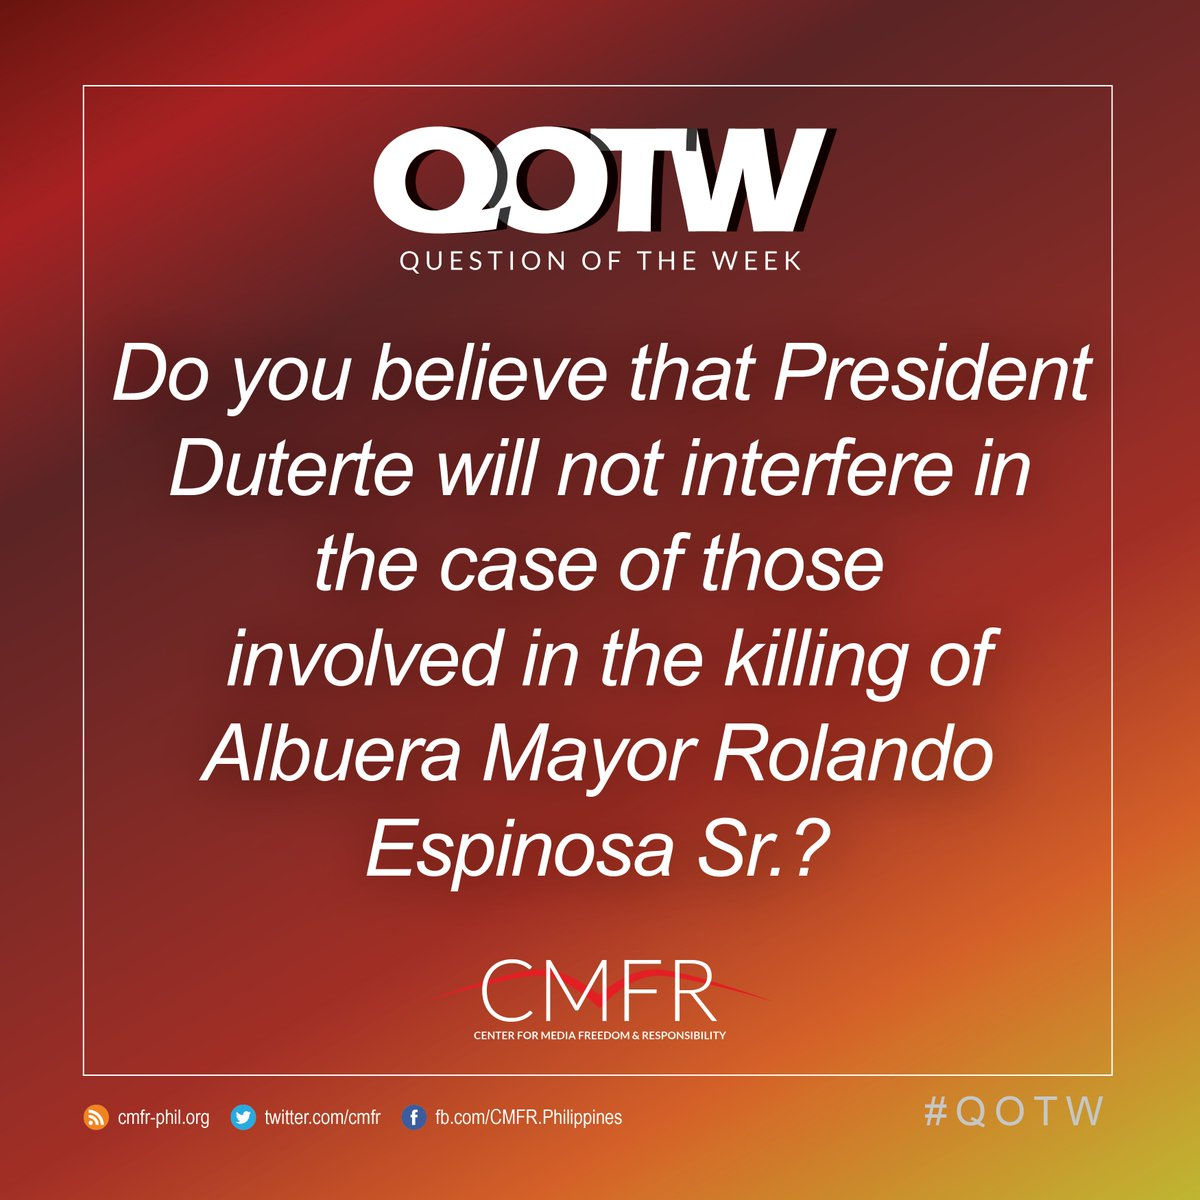 Thumbnail for QOTW: Do you believe that Pres. Duterte will not interfere in the case of cops involved in the killing of Espinosa?